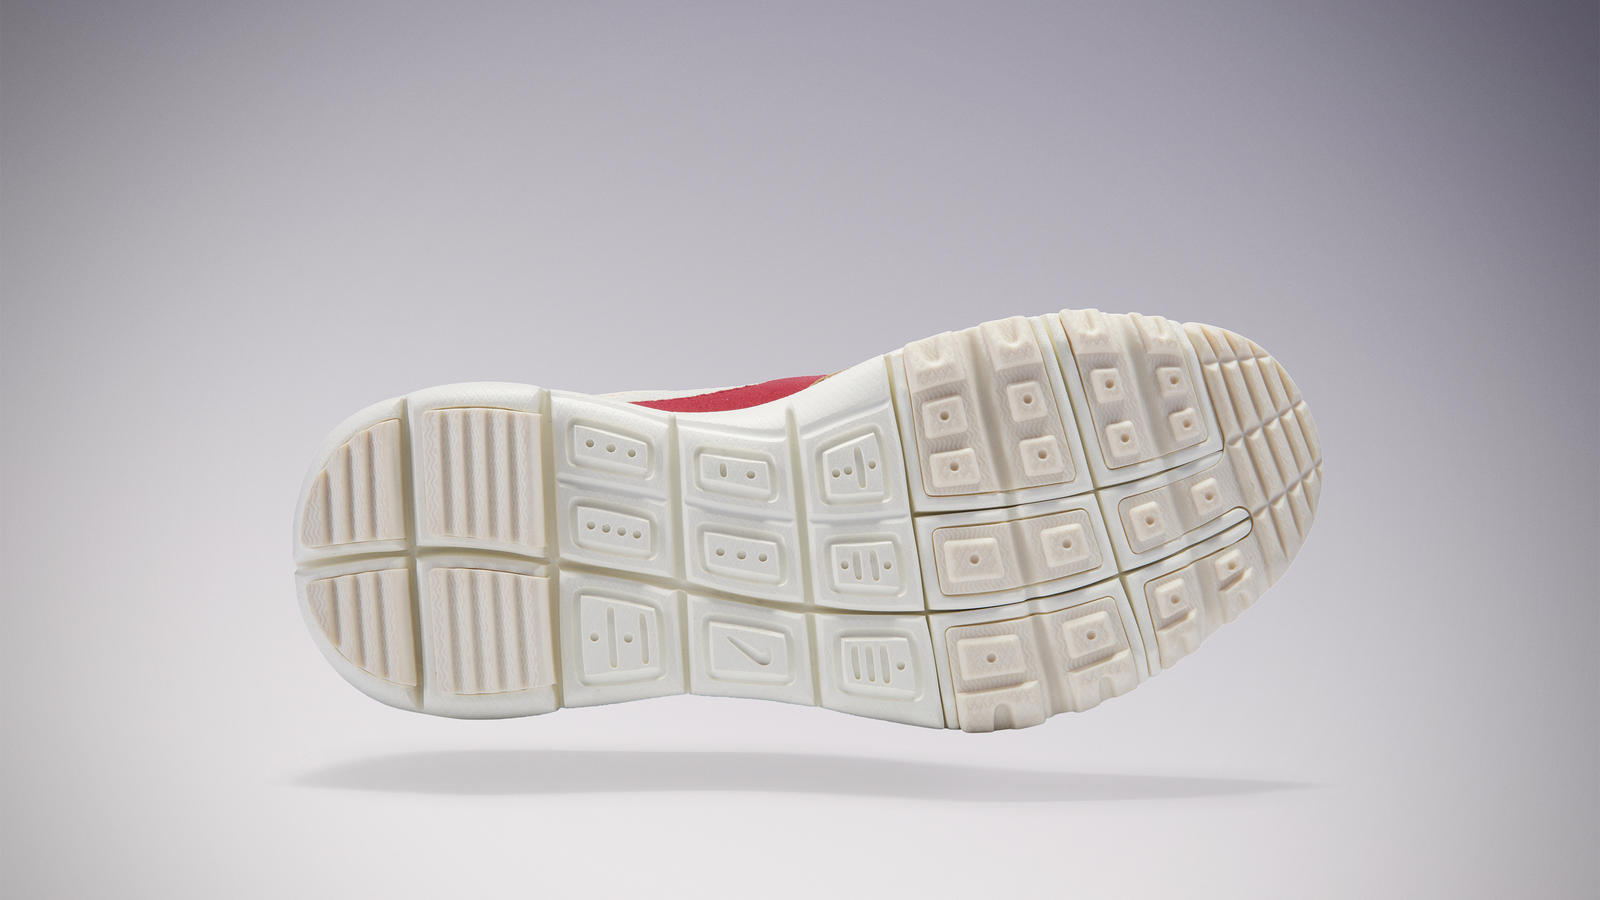 Nike and Tom Sachs' Introduce the NikeLab Mars Yard 2.0 9